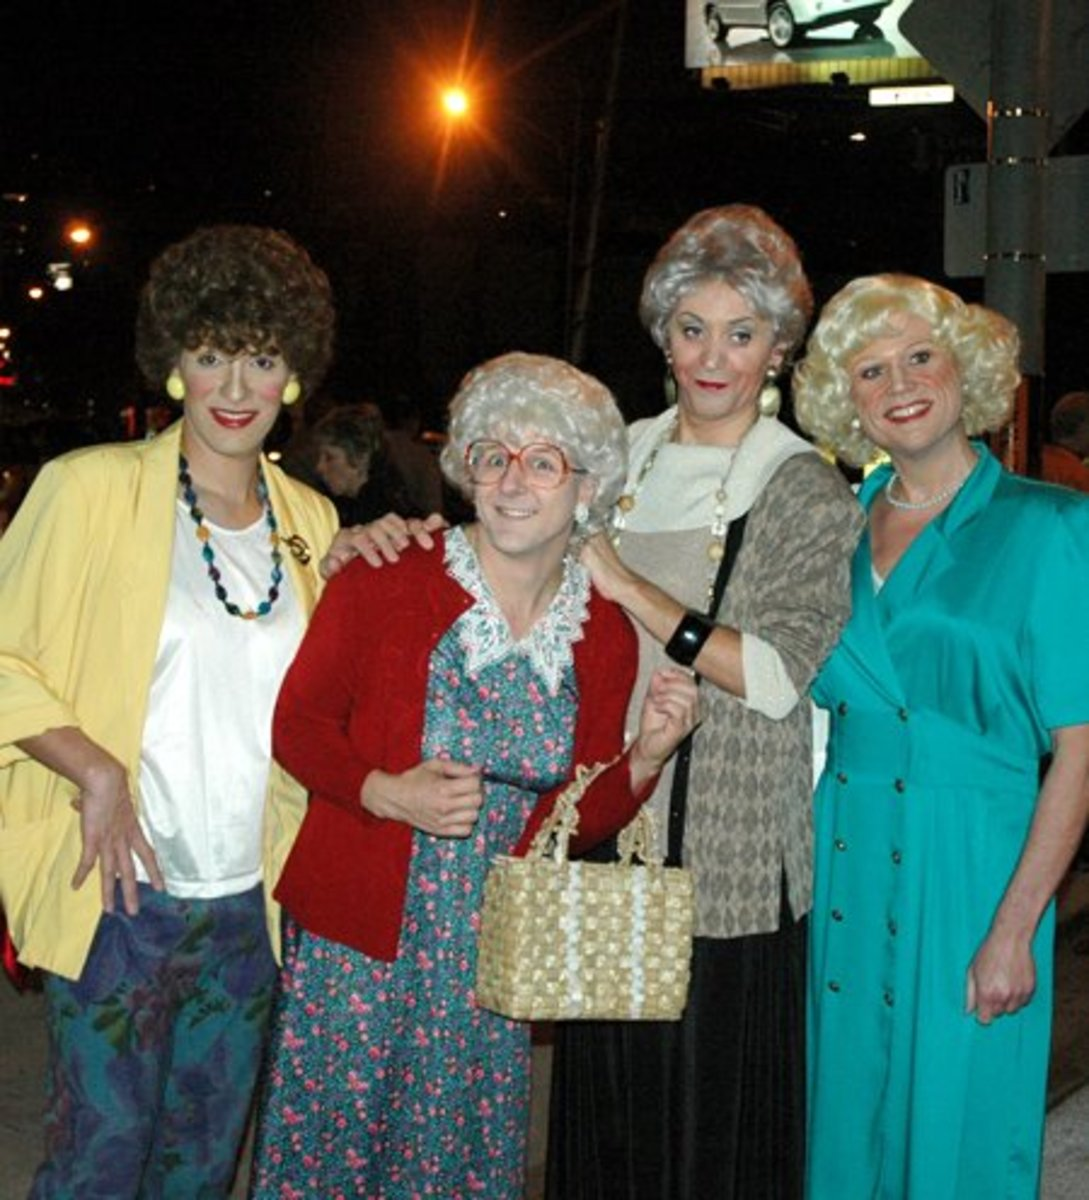 Golden Girls Group Costume | 101 Halloween Costume Ideas for Women  sc 1 st  Holidappy & 101 Halloween Costume Ideas for Women | Holidappy